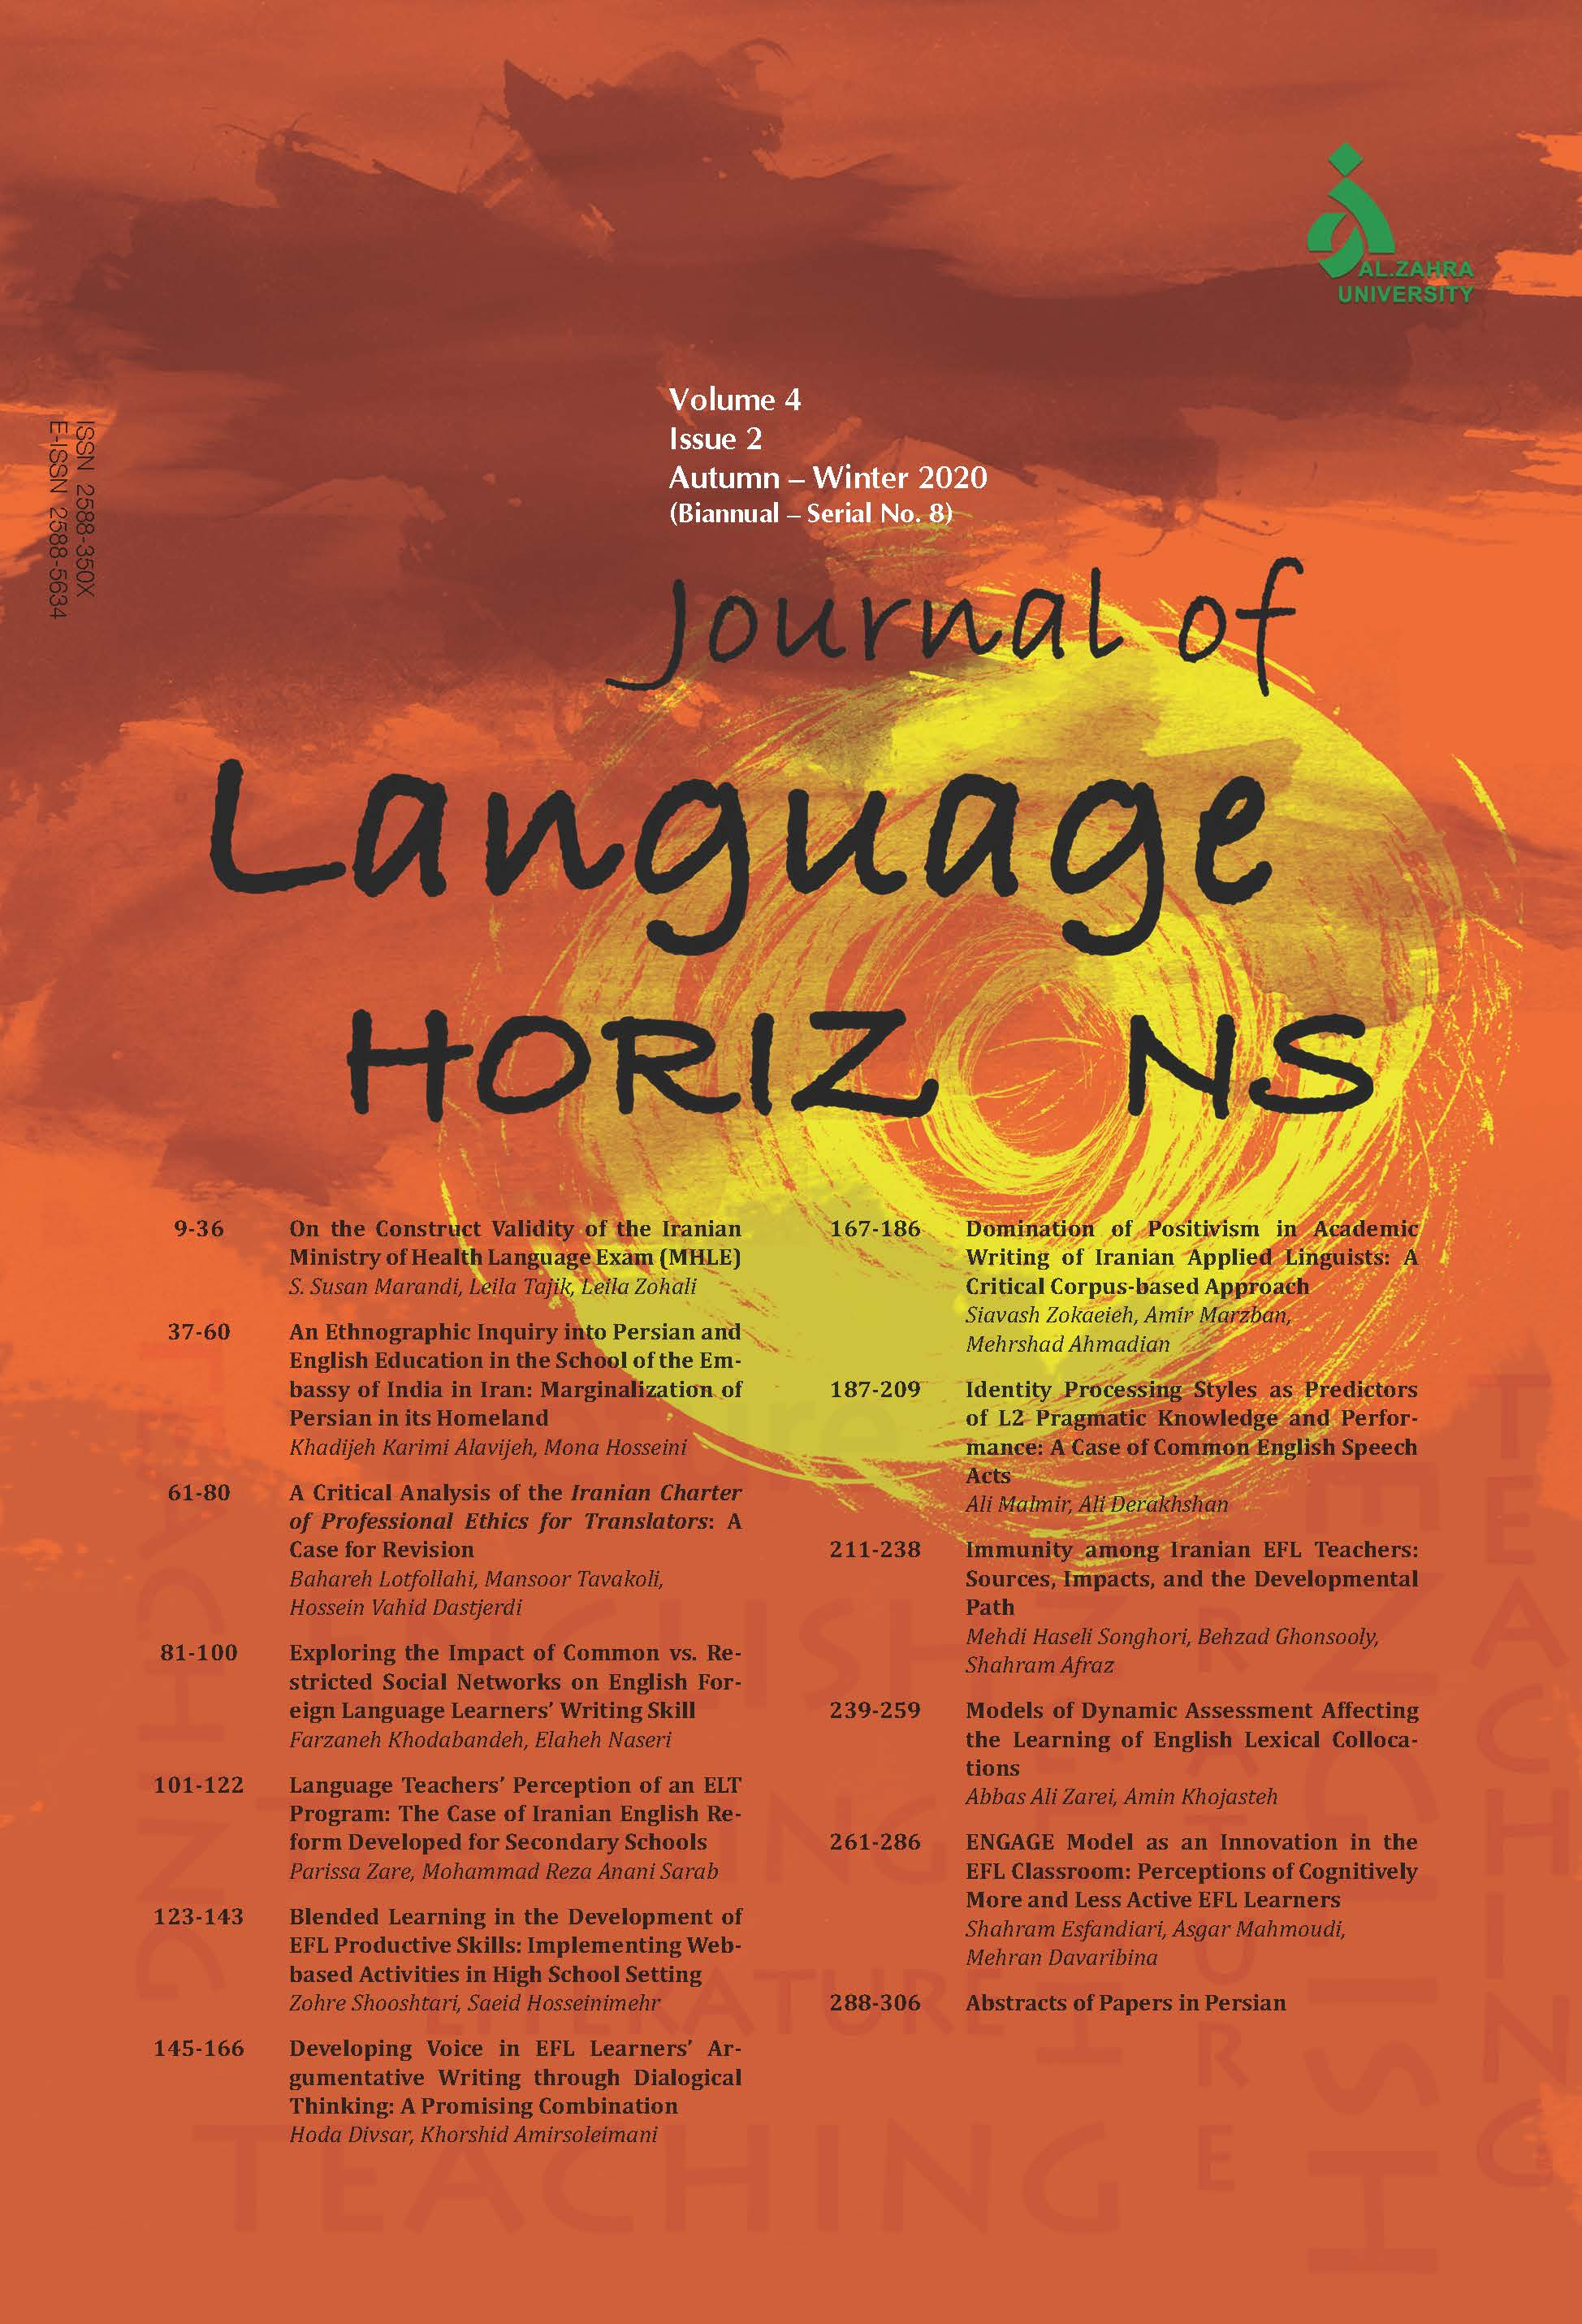 Journal of Language Horizons